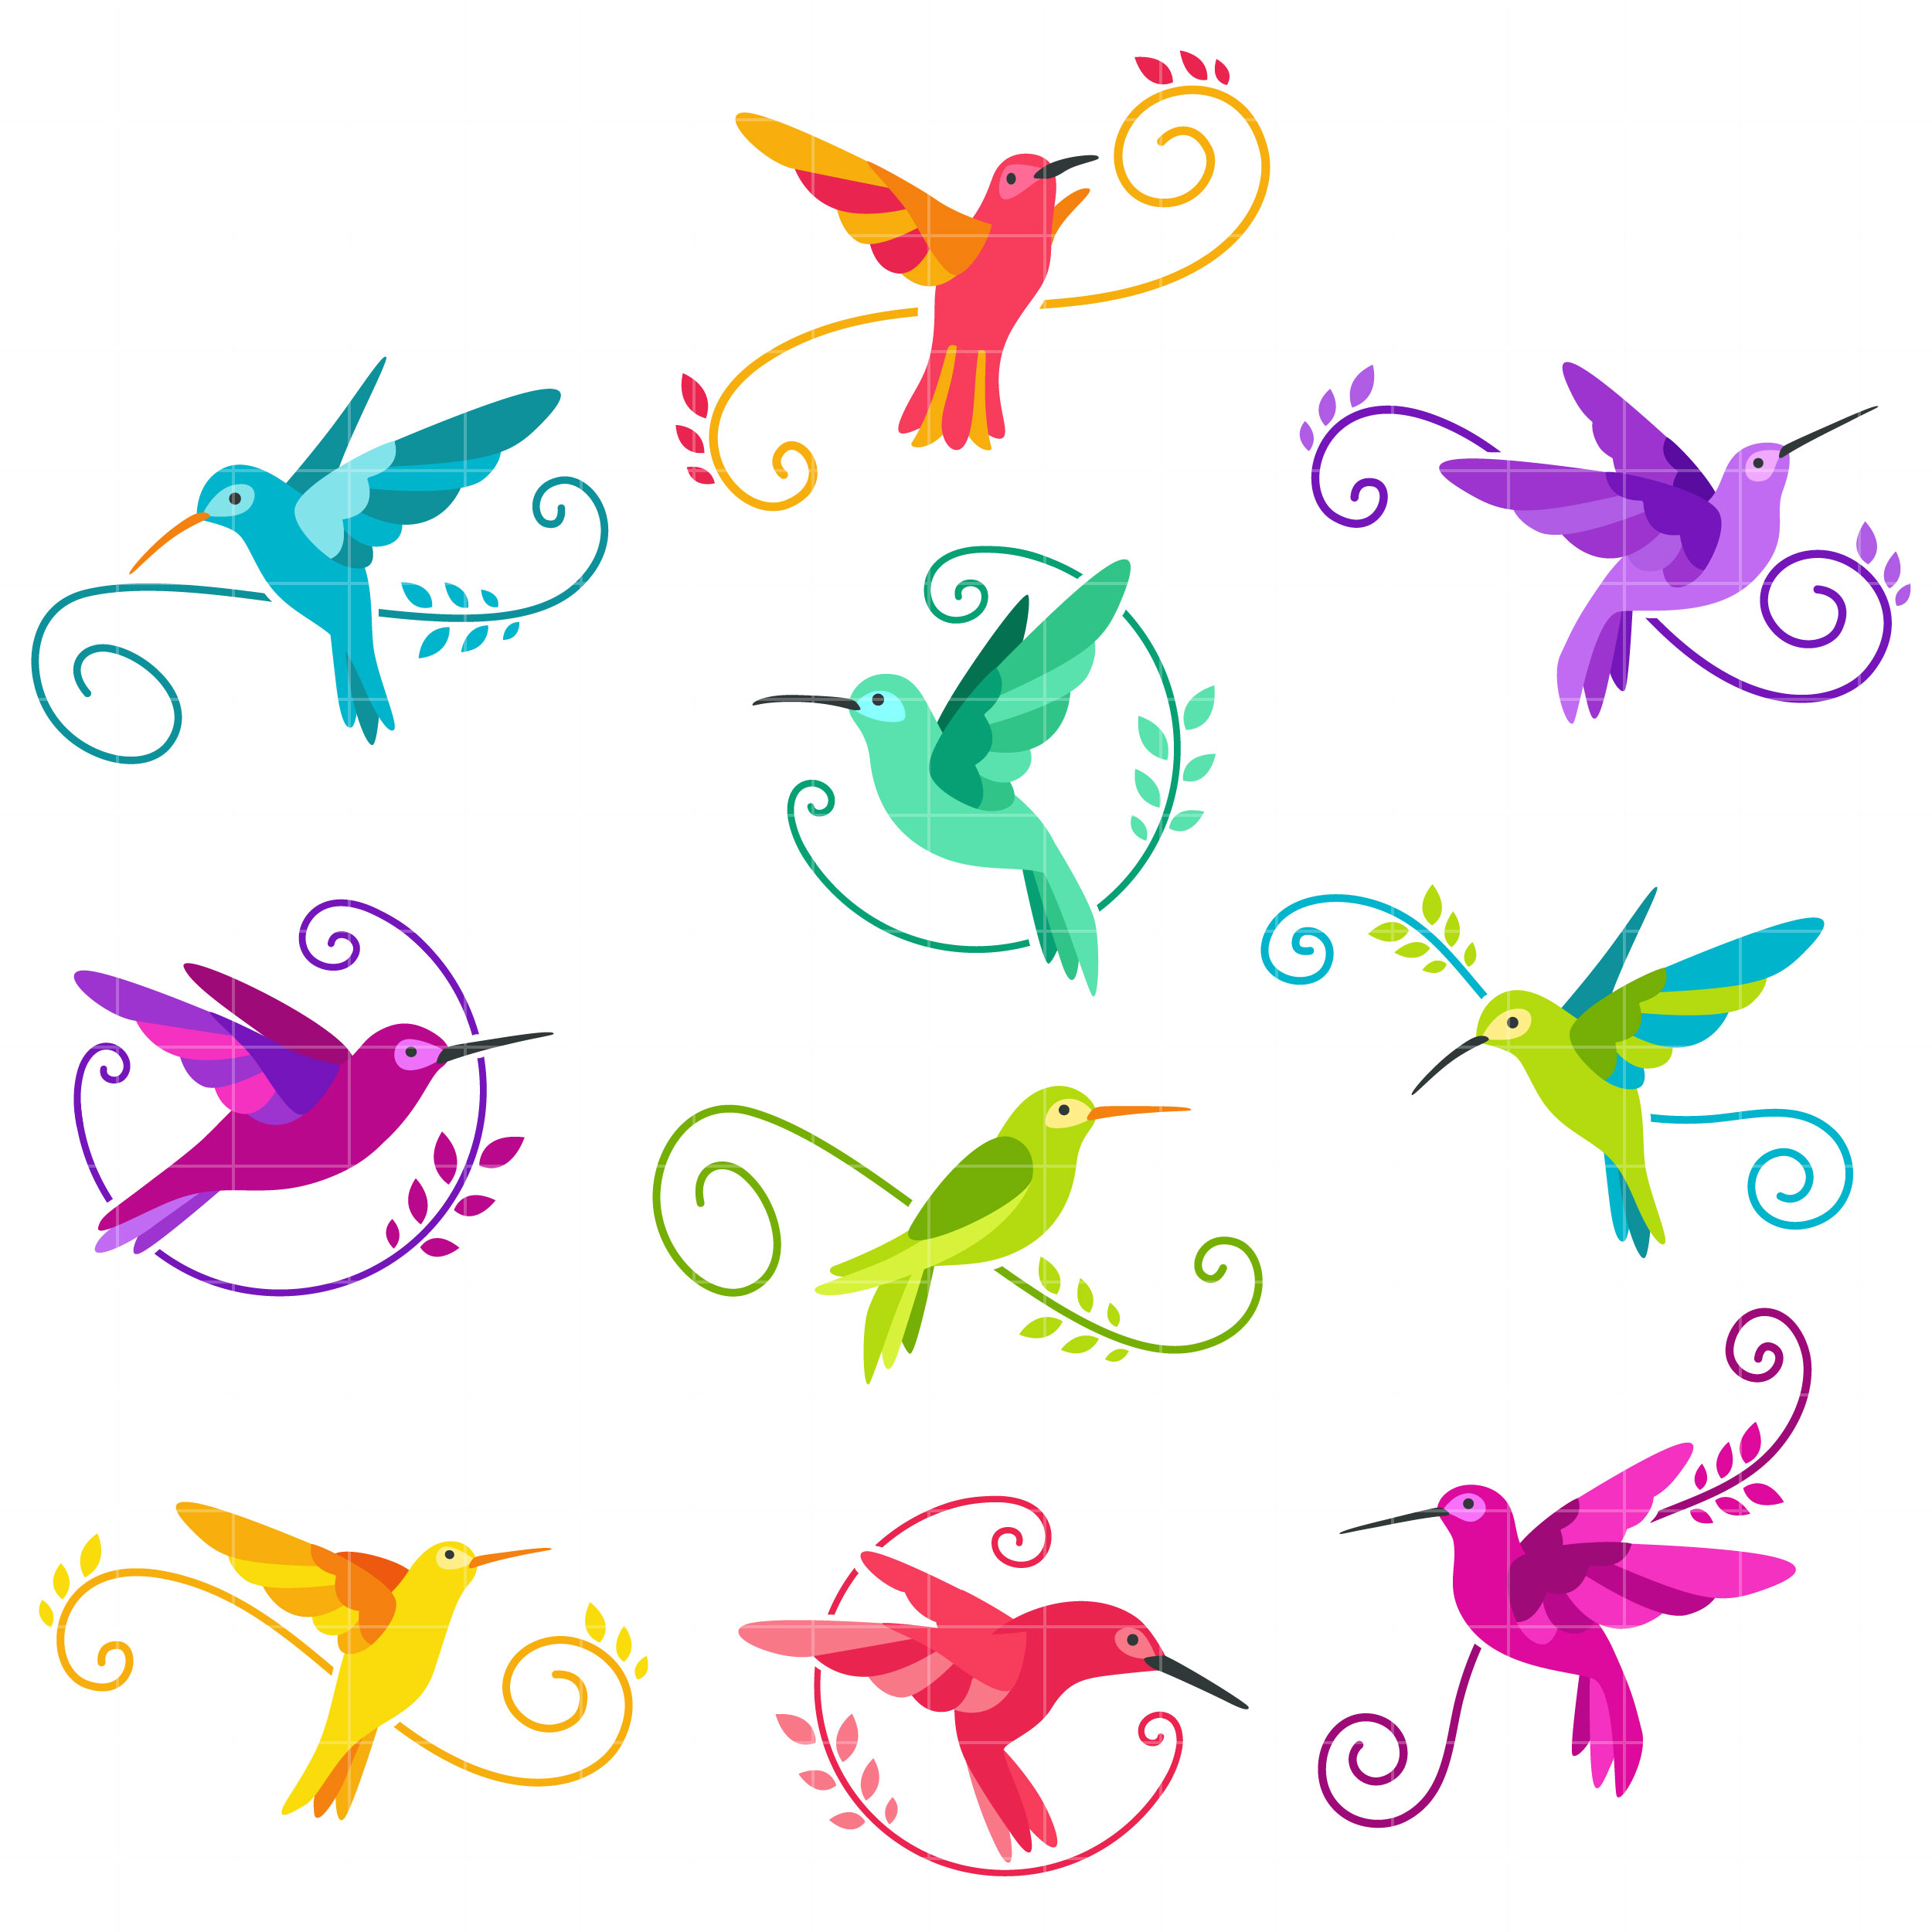 Hummingbirds and flowers clipart image library stock Hummingbird pictures clip art - ClipartFest image library stock